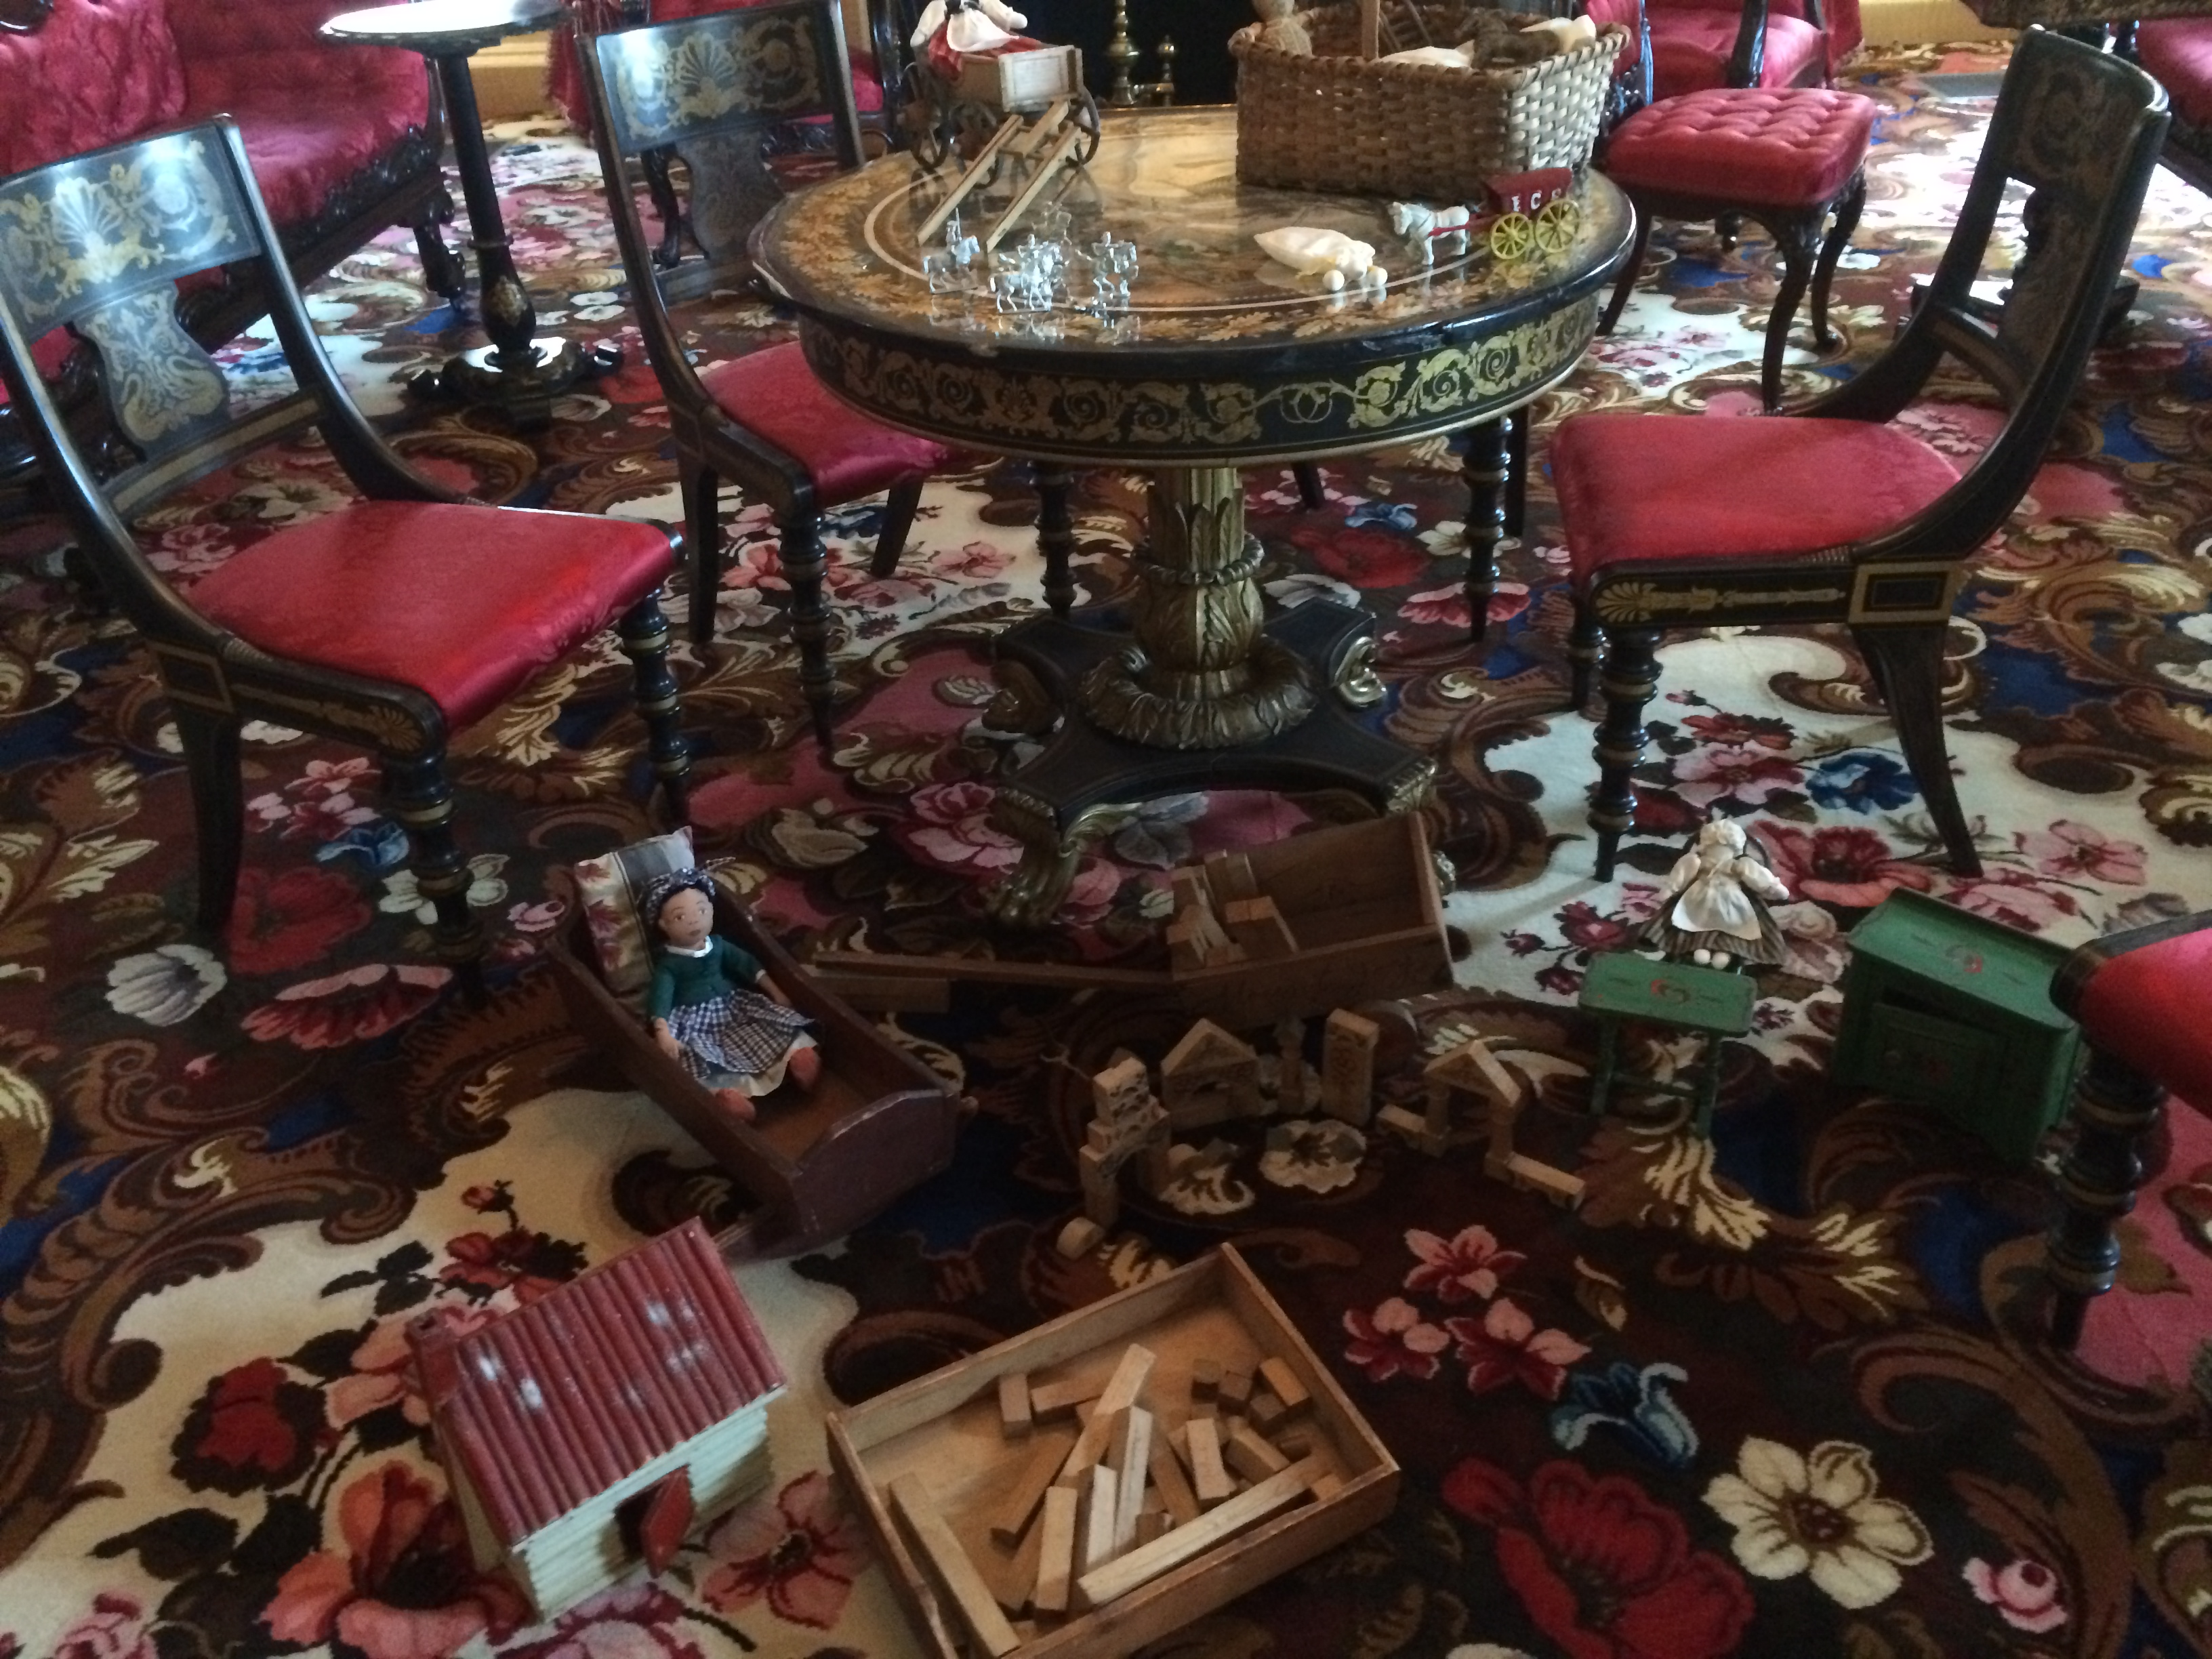 Toys in sitting room